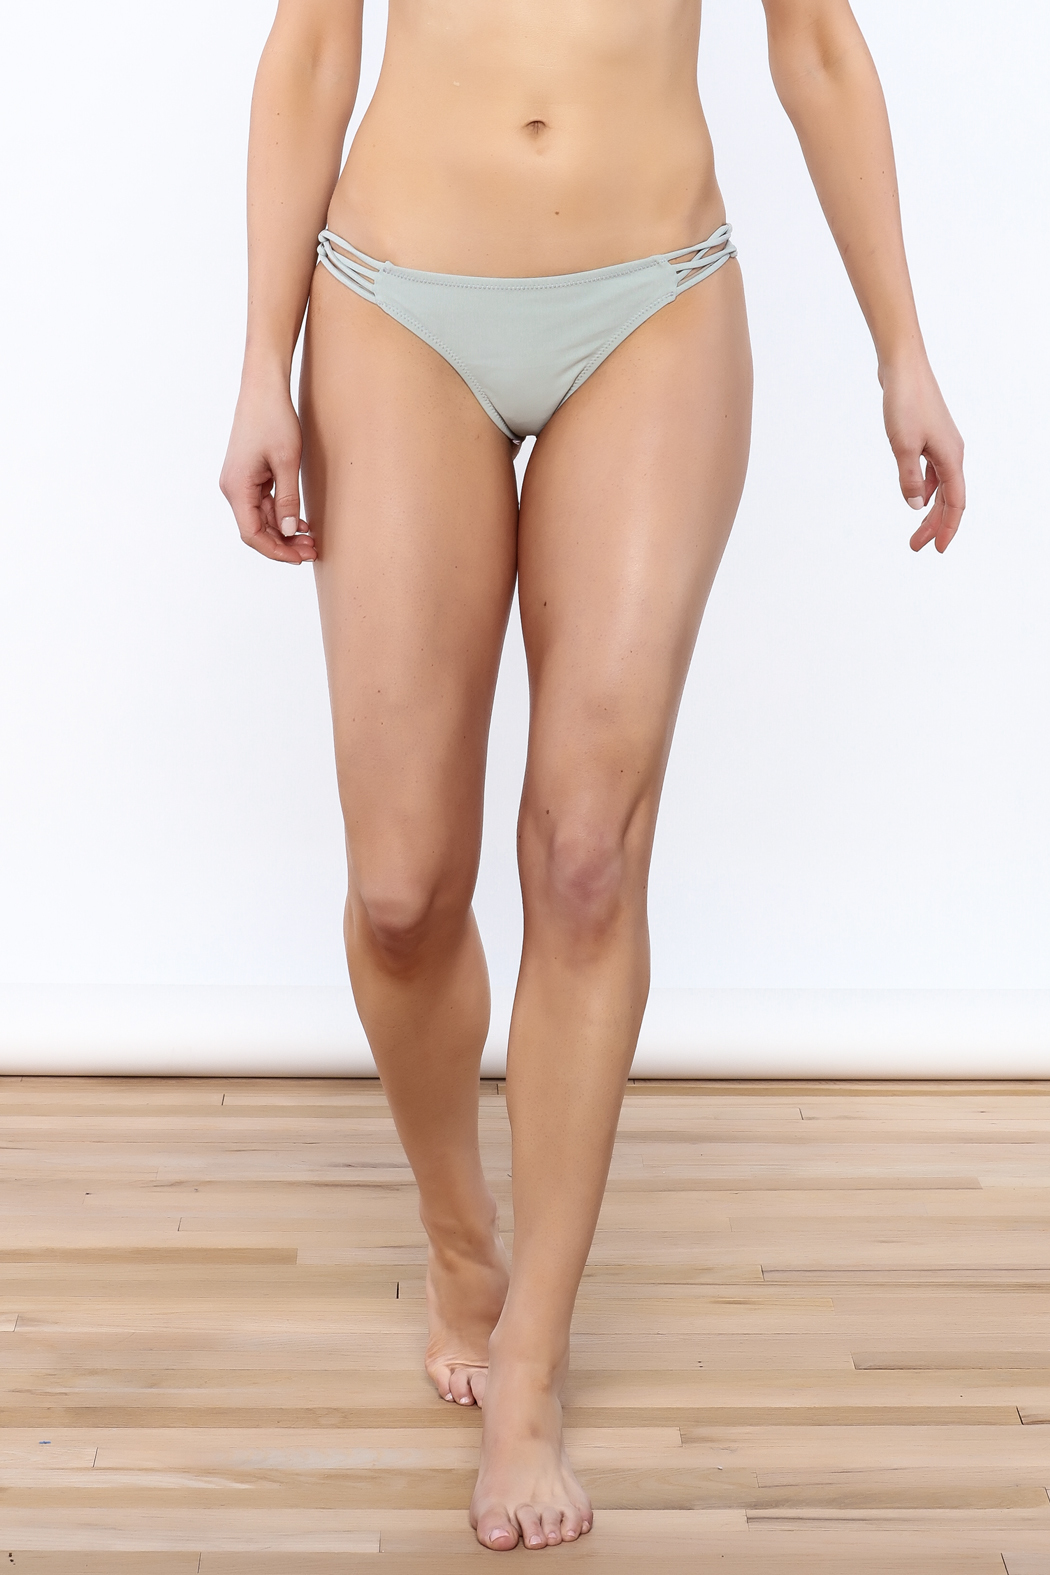 aff8088f4a7 Forever Young Swimwear Strappy Bikini Bottom from Nevada by Forever ...